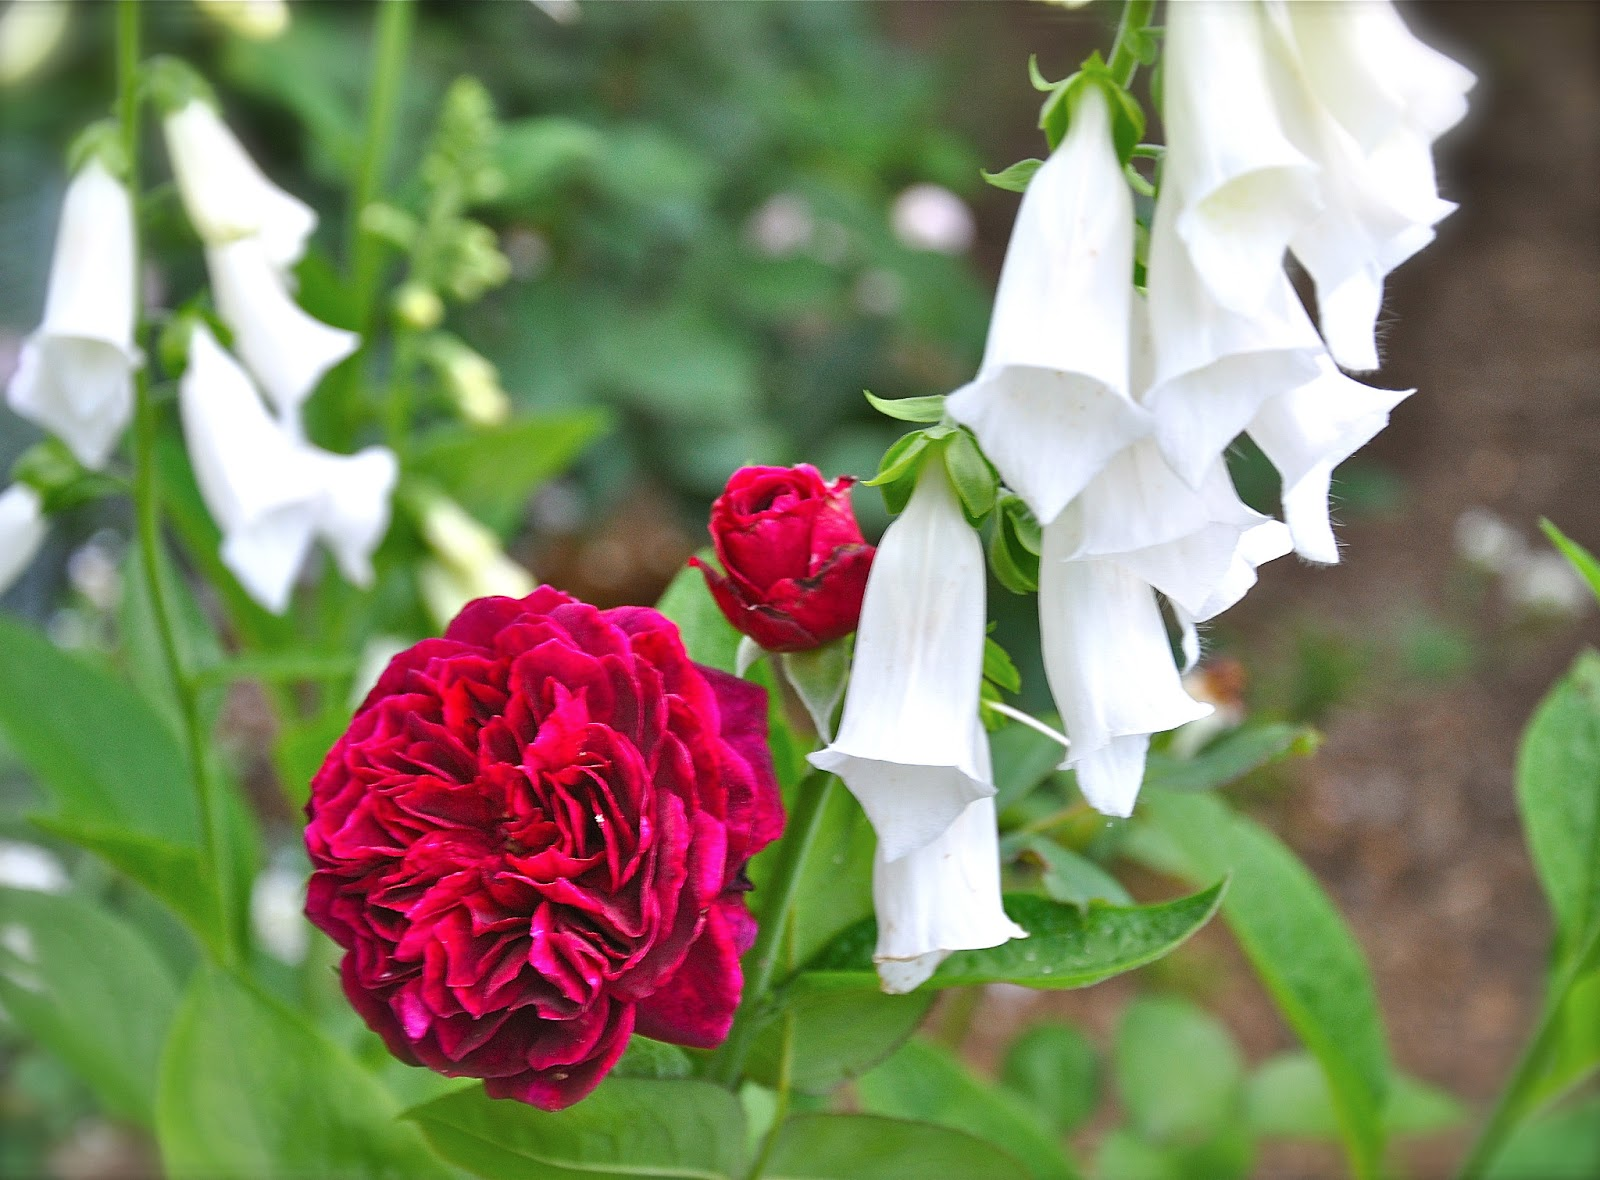 How to prune a rose bush -  When And How To Prune Roses